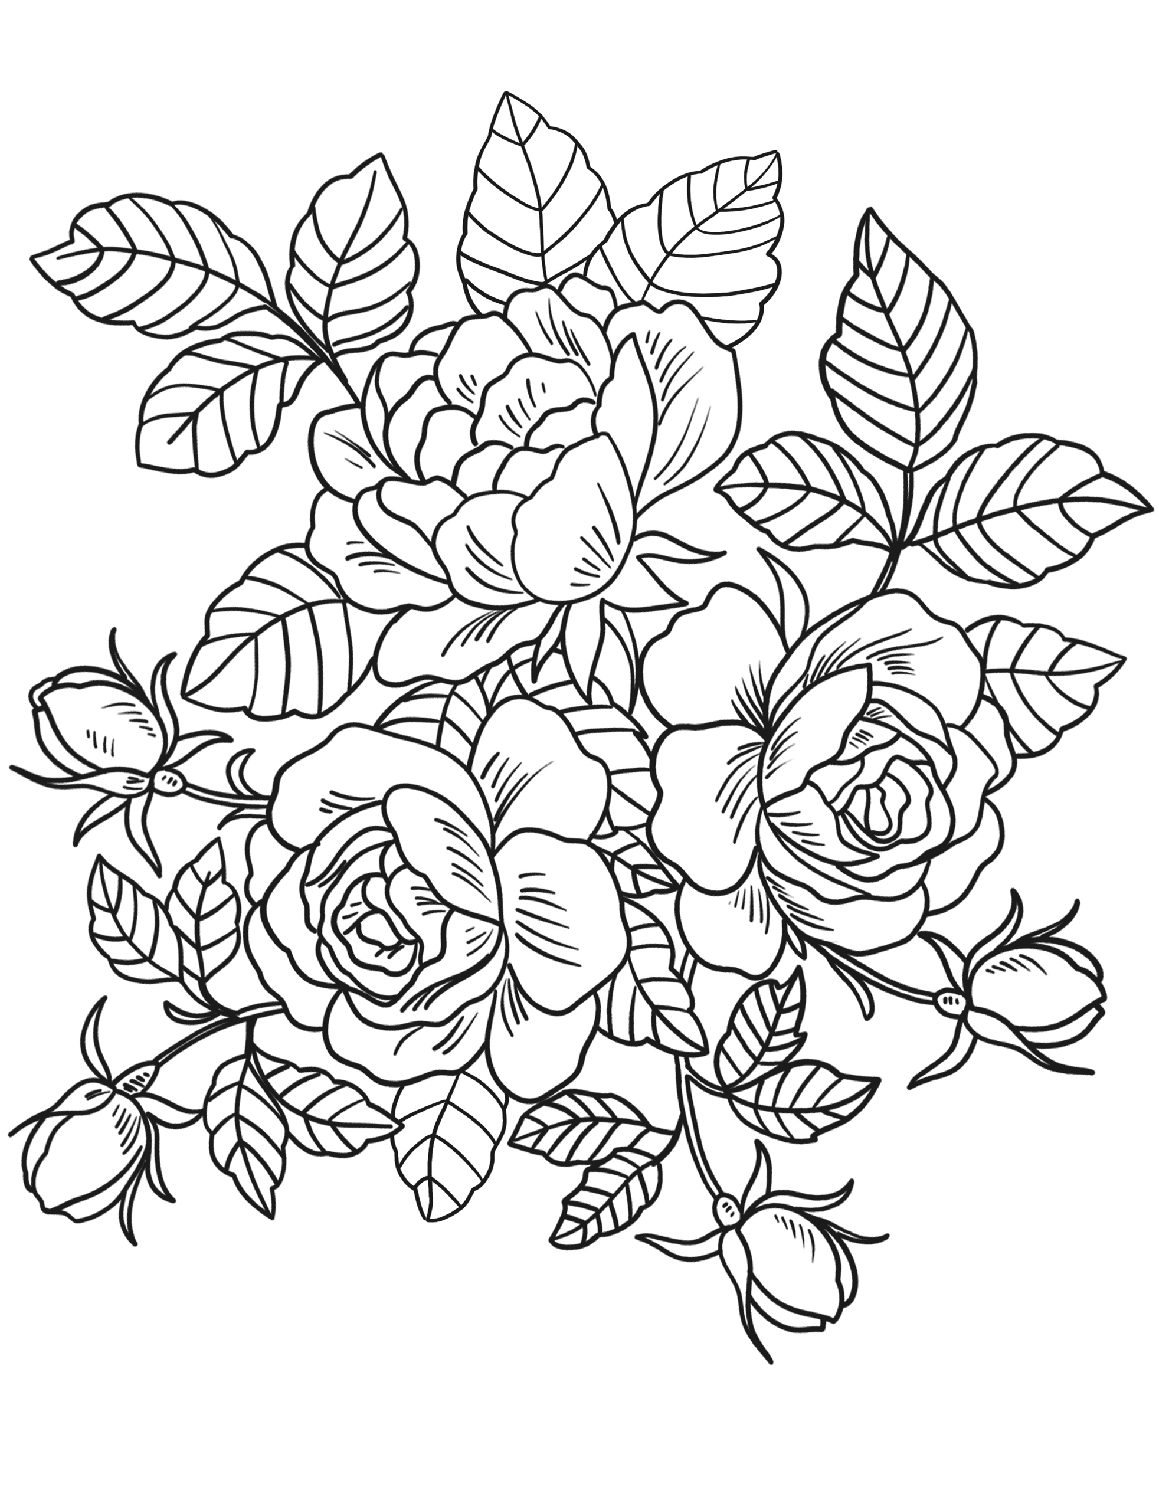 colouring flowers free printable flower coloring pages for kids cool2bkids colouring flowers